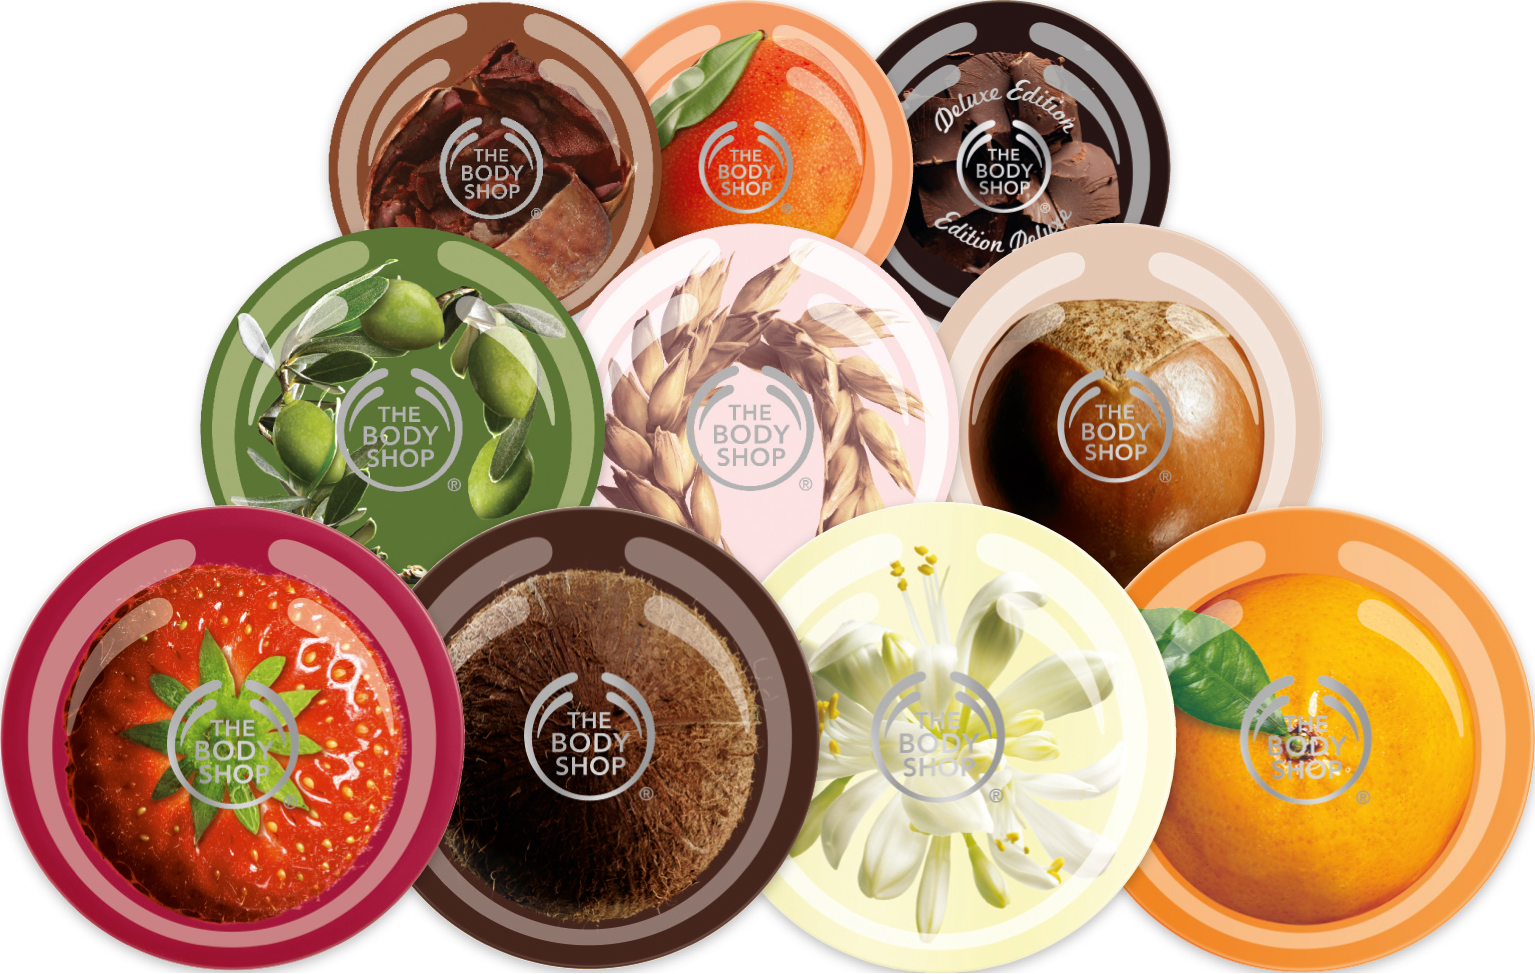 body shop finances 16082018 the body shop international plc watersmead business parklittlehampton,  gordon roddick became company chairperson and handled the finances as well,.